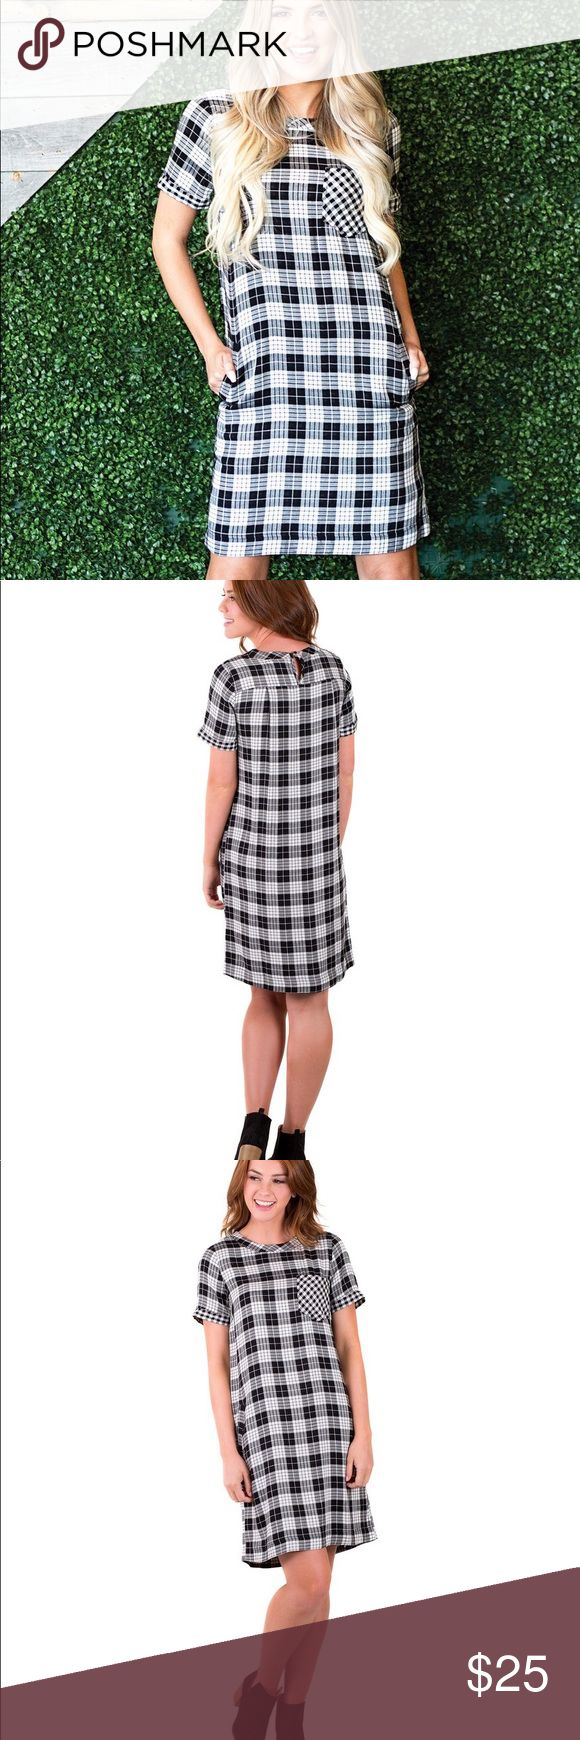 Downeast Check Up Dress Like new, black and white checkered dress, knee length, size small Downeast Dresses Midi